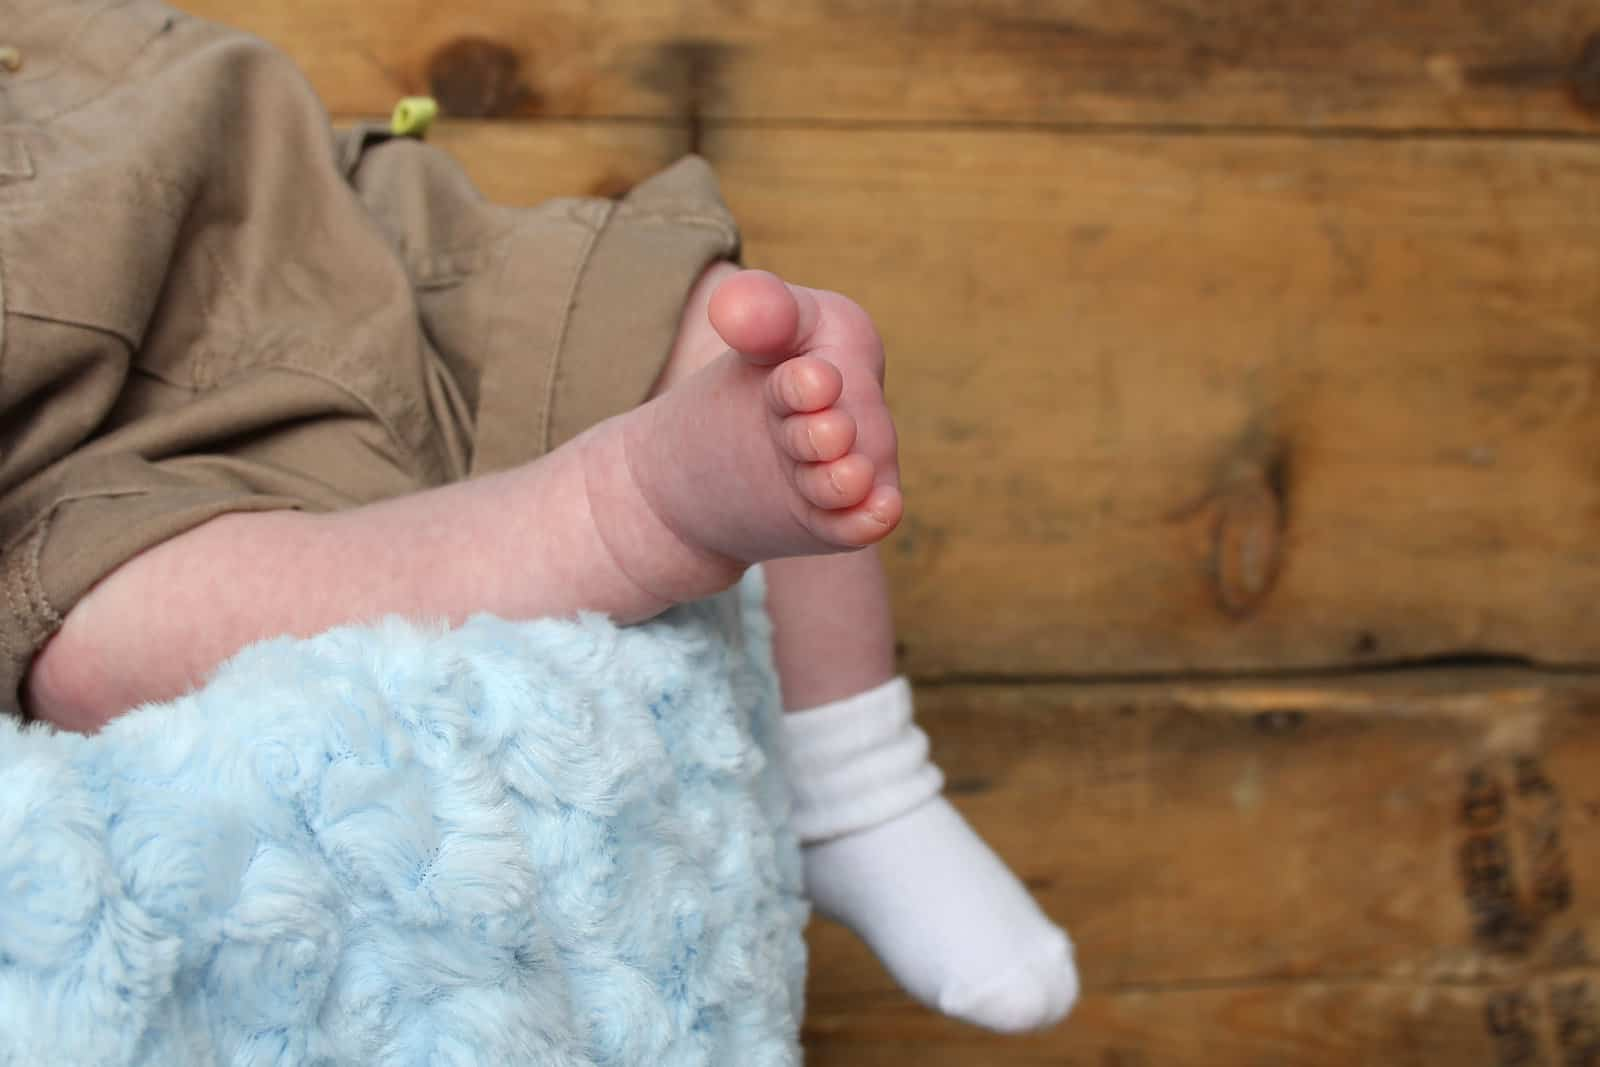 Why does my child only wear one sock?